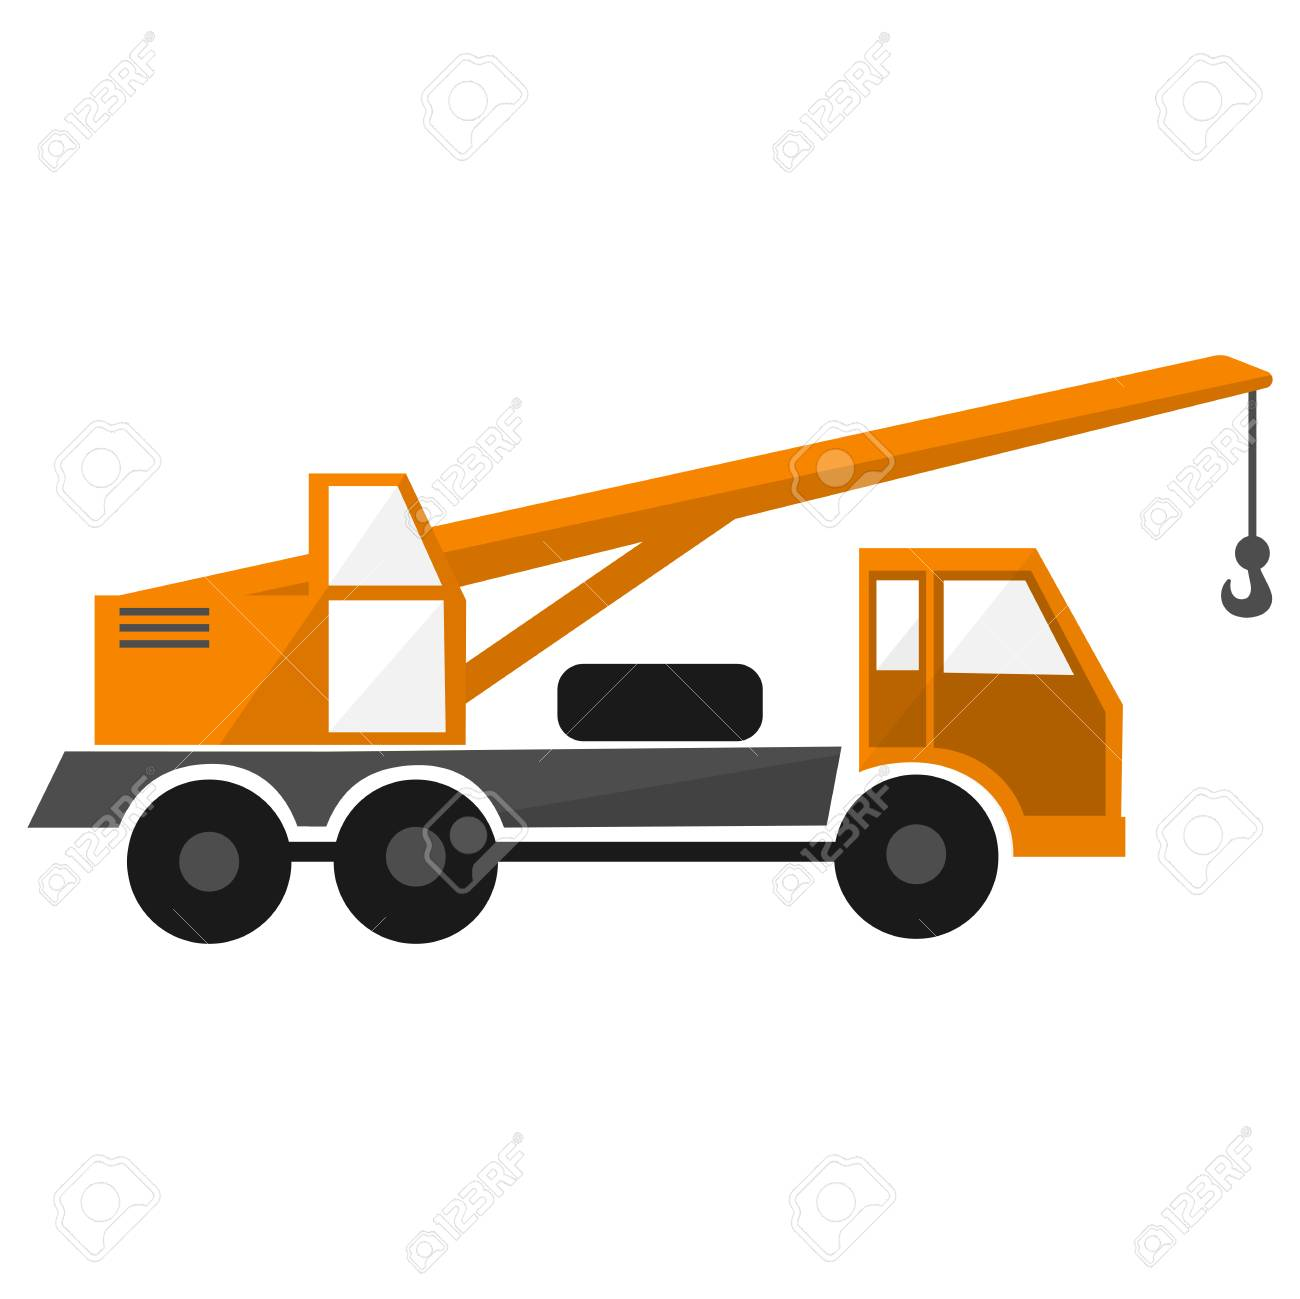 orange truck crane, construction car,industrial heavy automobile,.. royalty  free cliparts, vectors, and stock illustration. image 72995804.  123rf